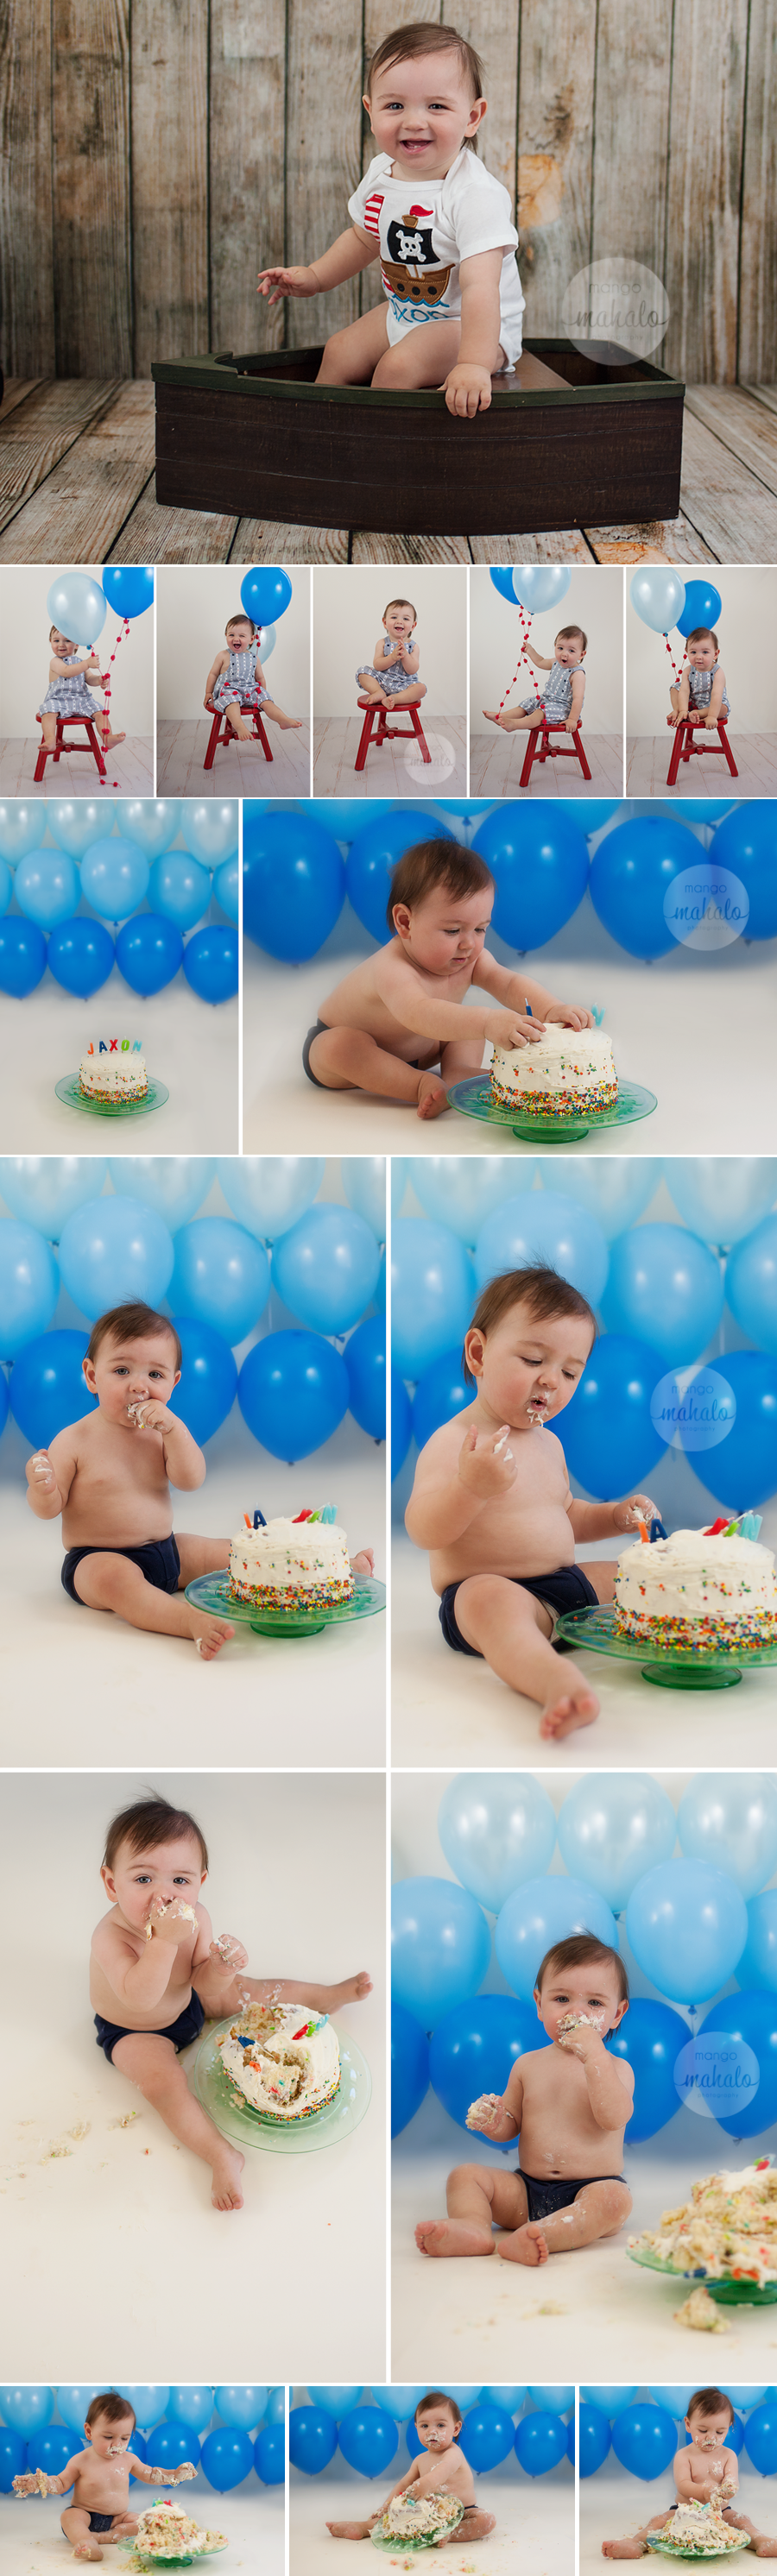 1st year child portraits and cake smash by Southern California Child Photographer Mango Mahalo Photography